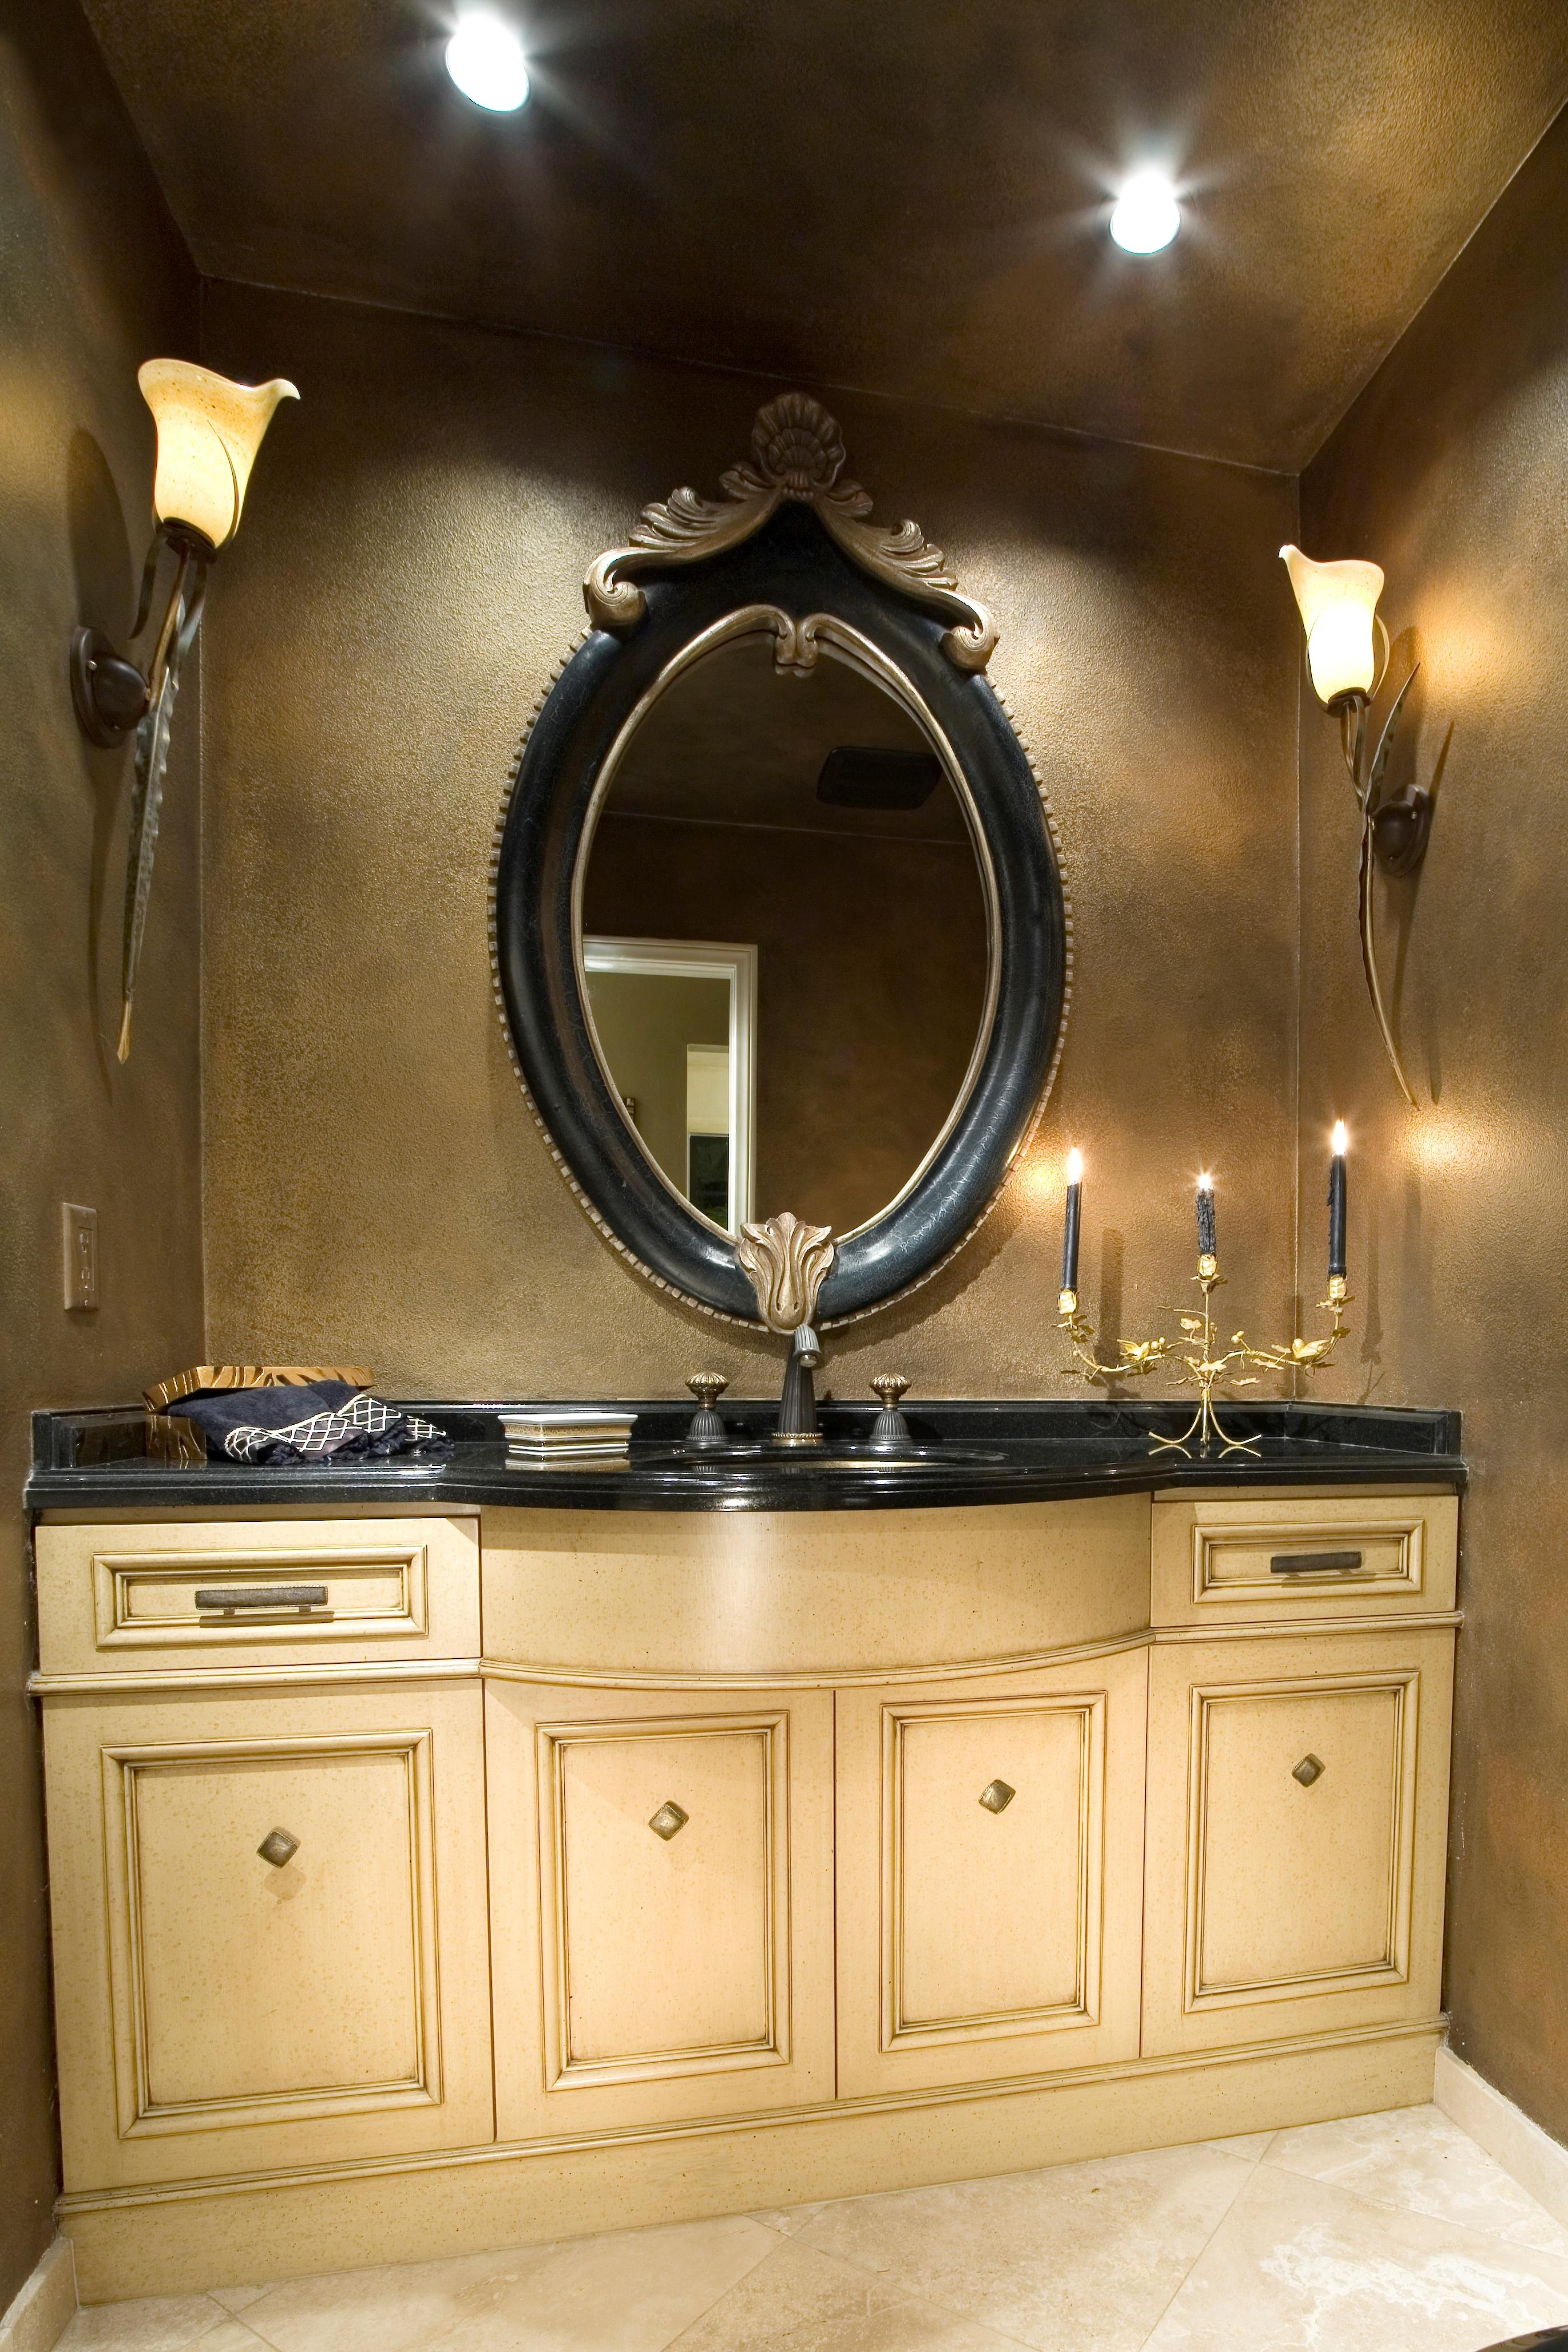 Bathroom: Wondrous White Pine Woods Vanities Bathroom With Double With Small Antique Mirrors (Image 2 of 20)